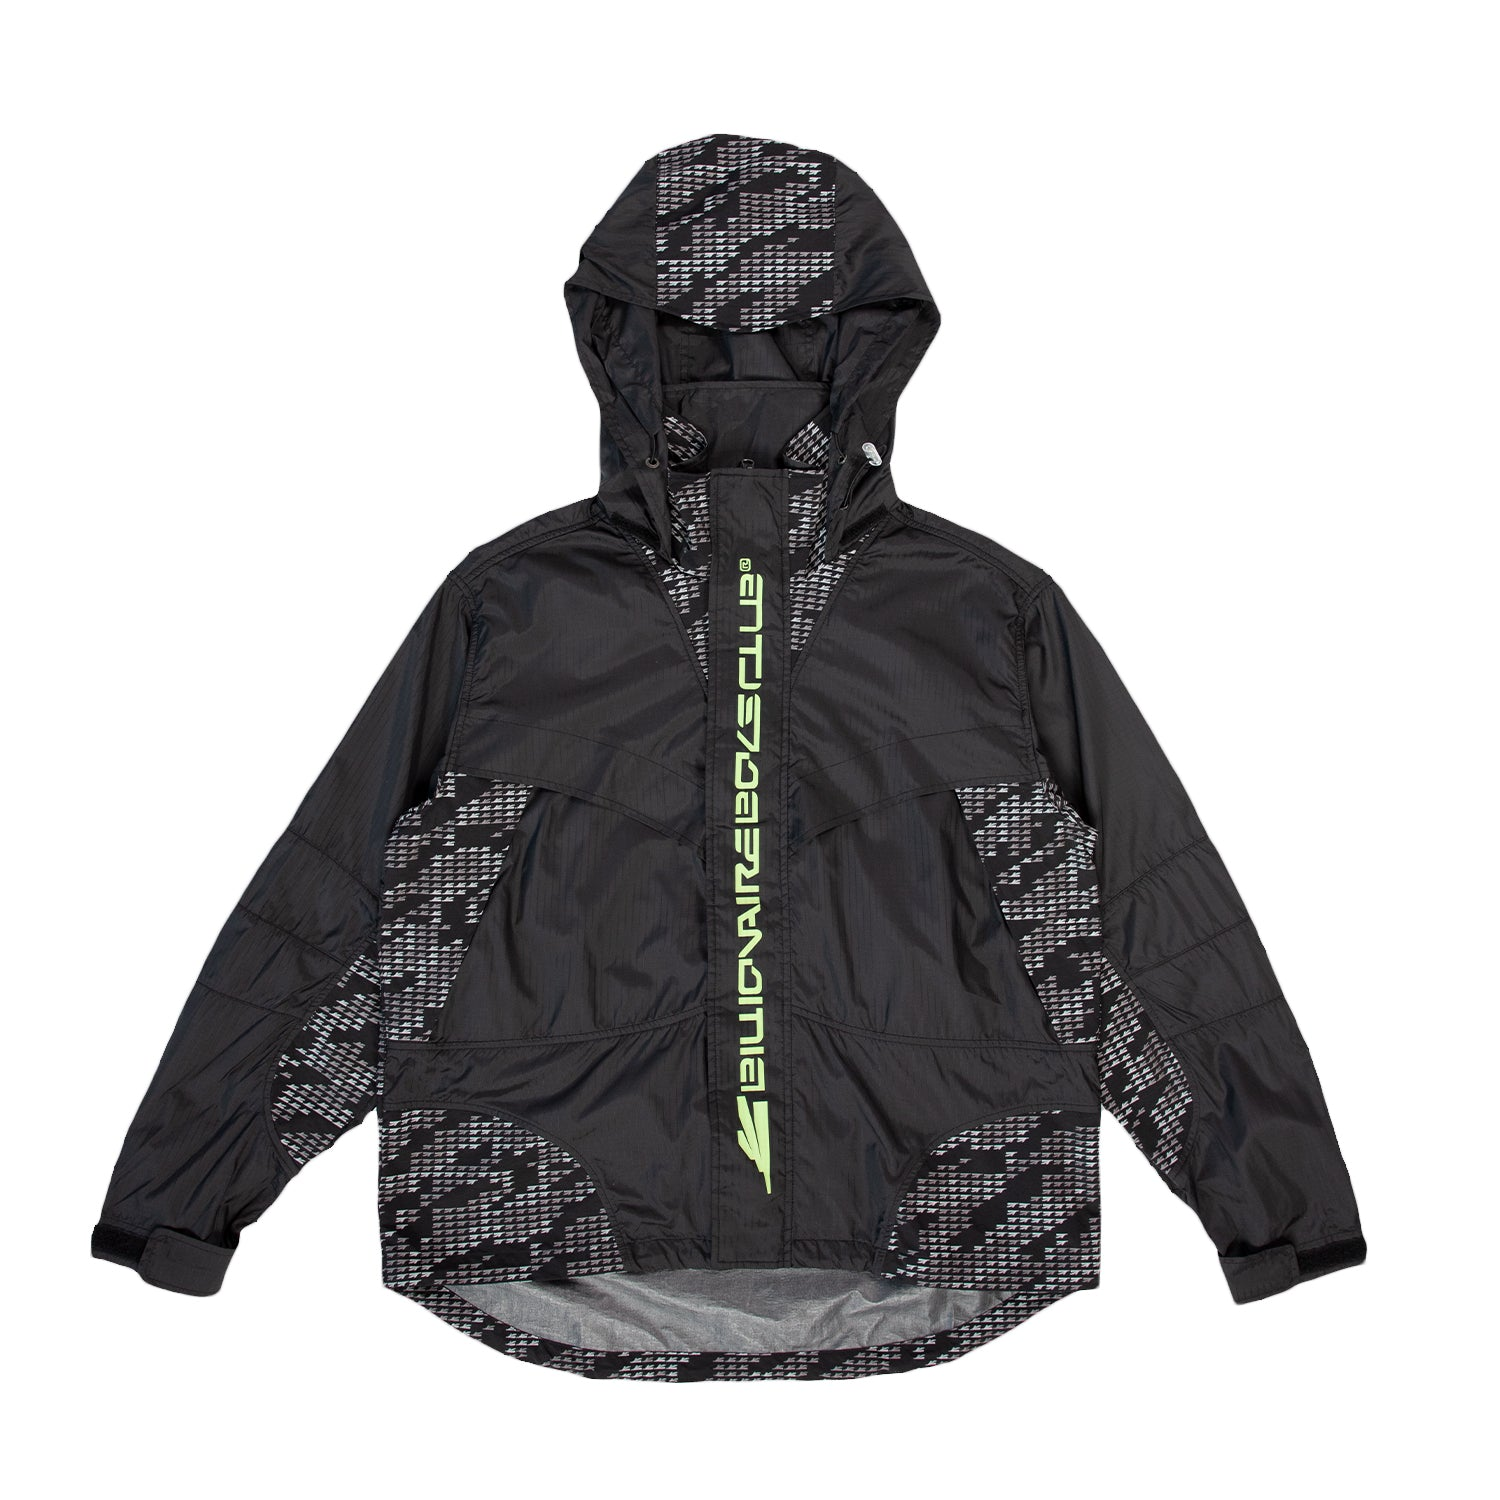 BBC X CDL GLITCH WINDBREAKER